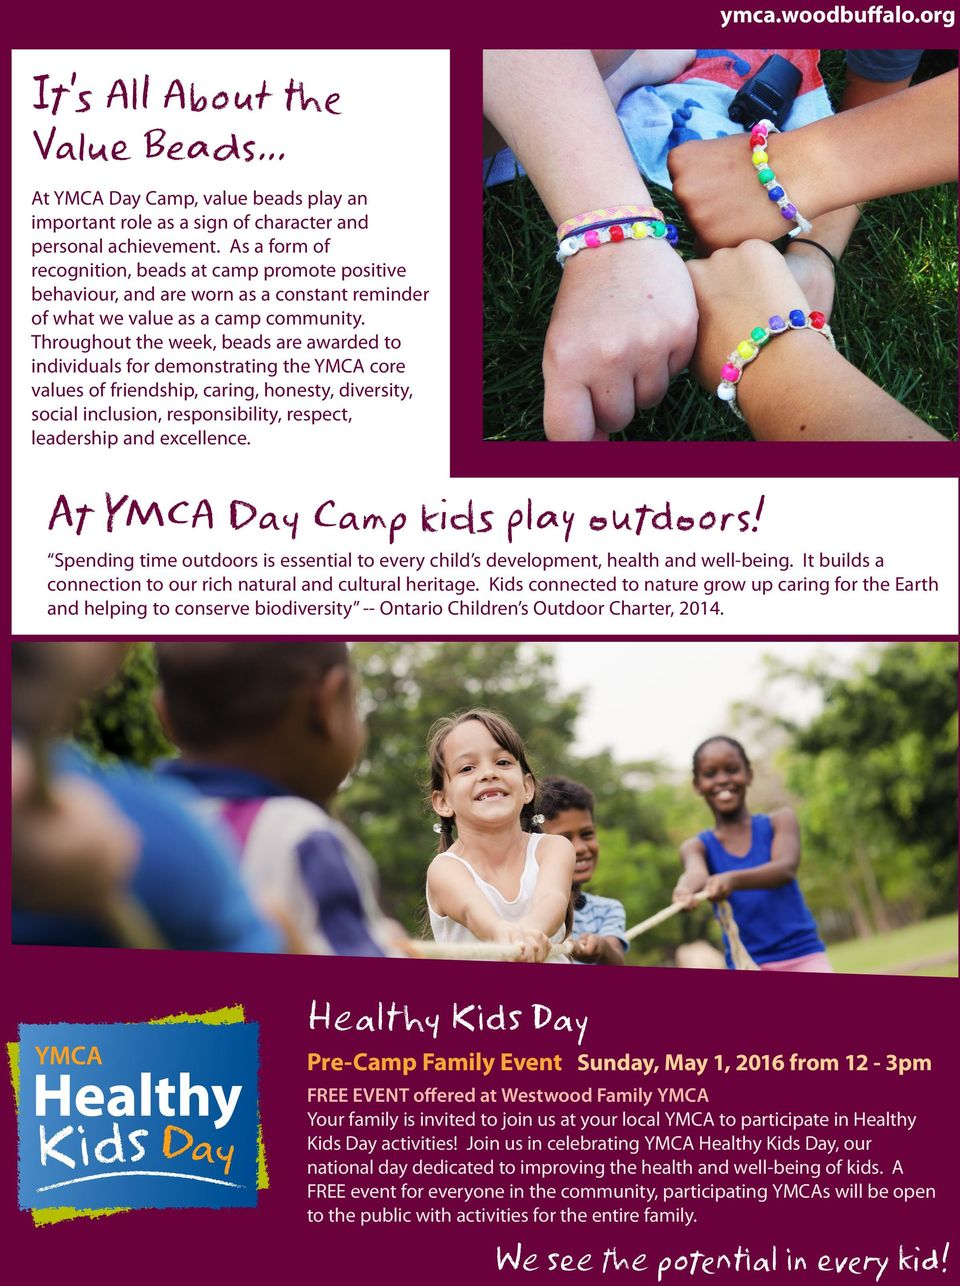 Throughout the week, beads are awarded to individuals for demonstrating the YMCA core values of friendship, caring, honesty, diversity, social inclusion, responsibility, respect, leadership and